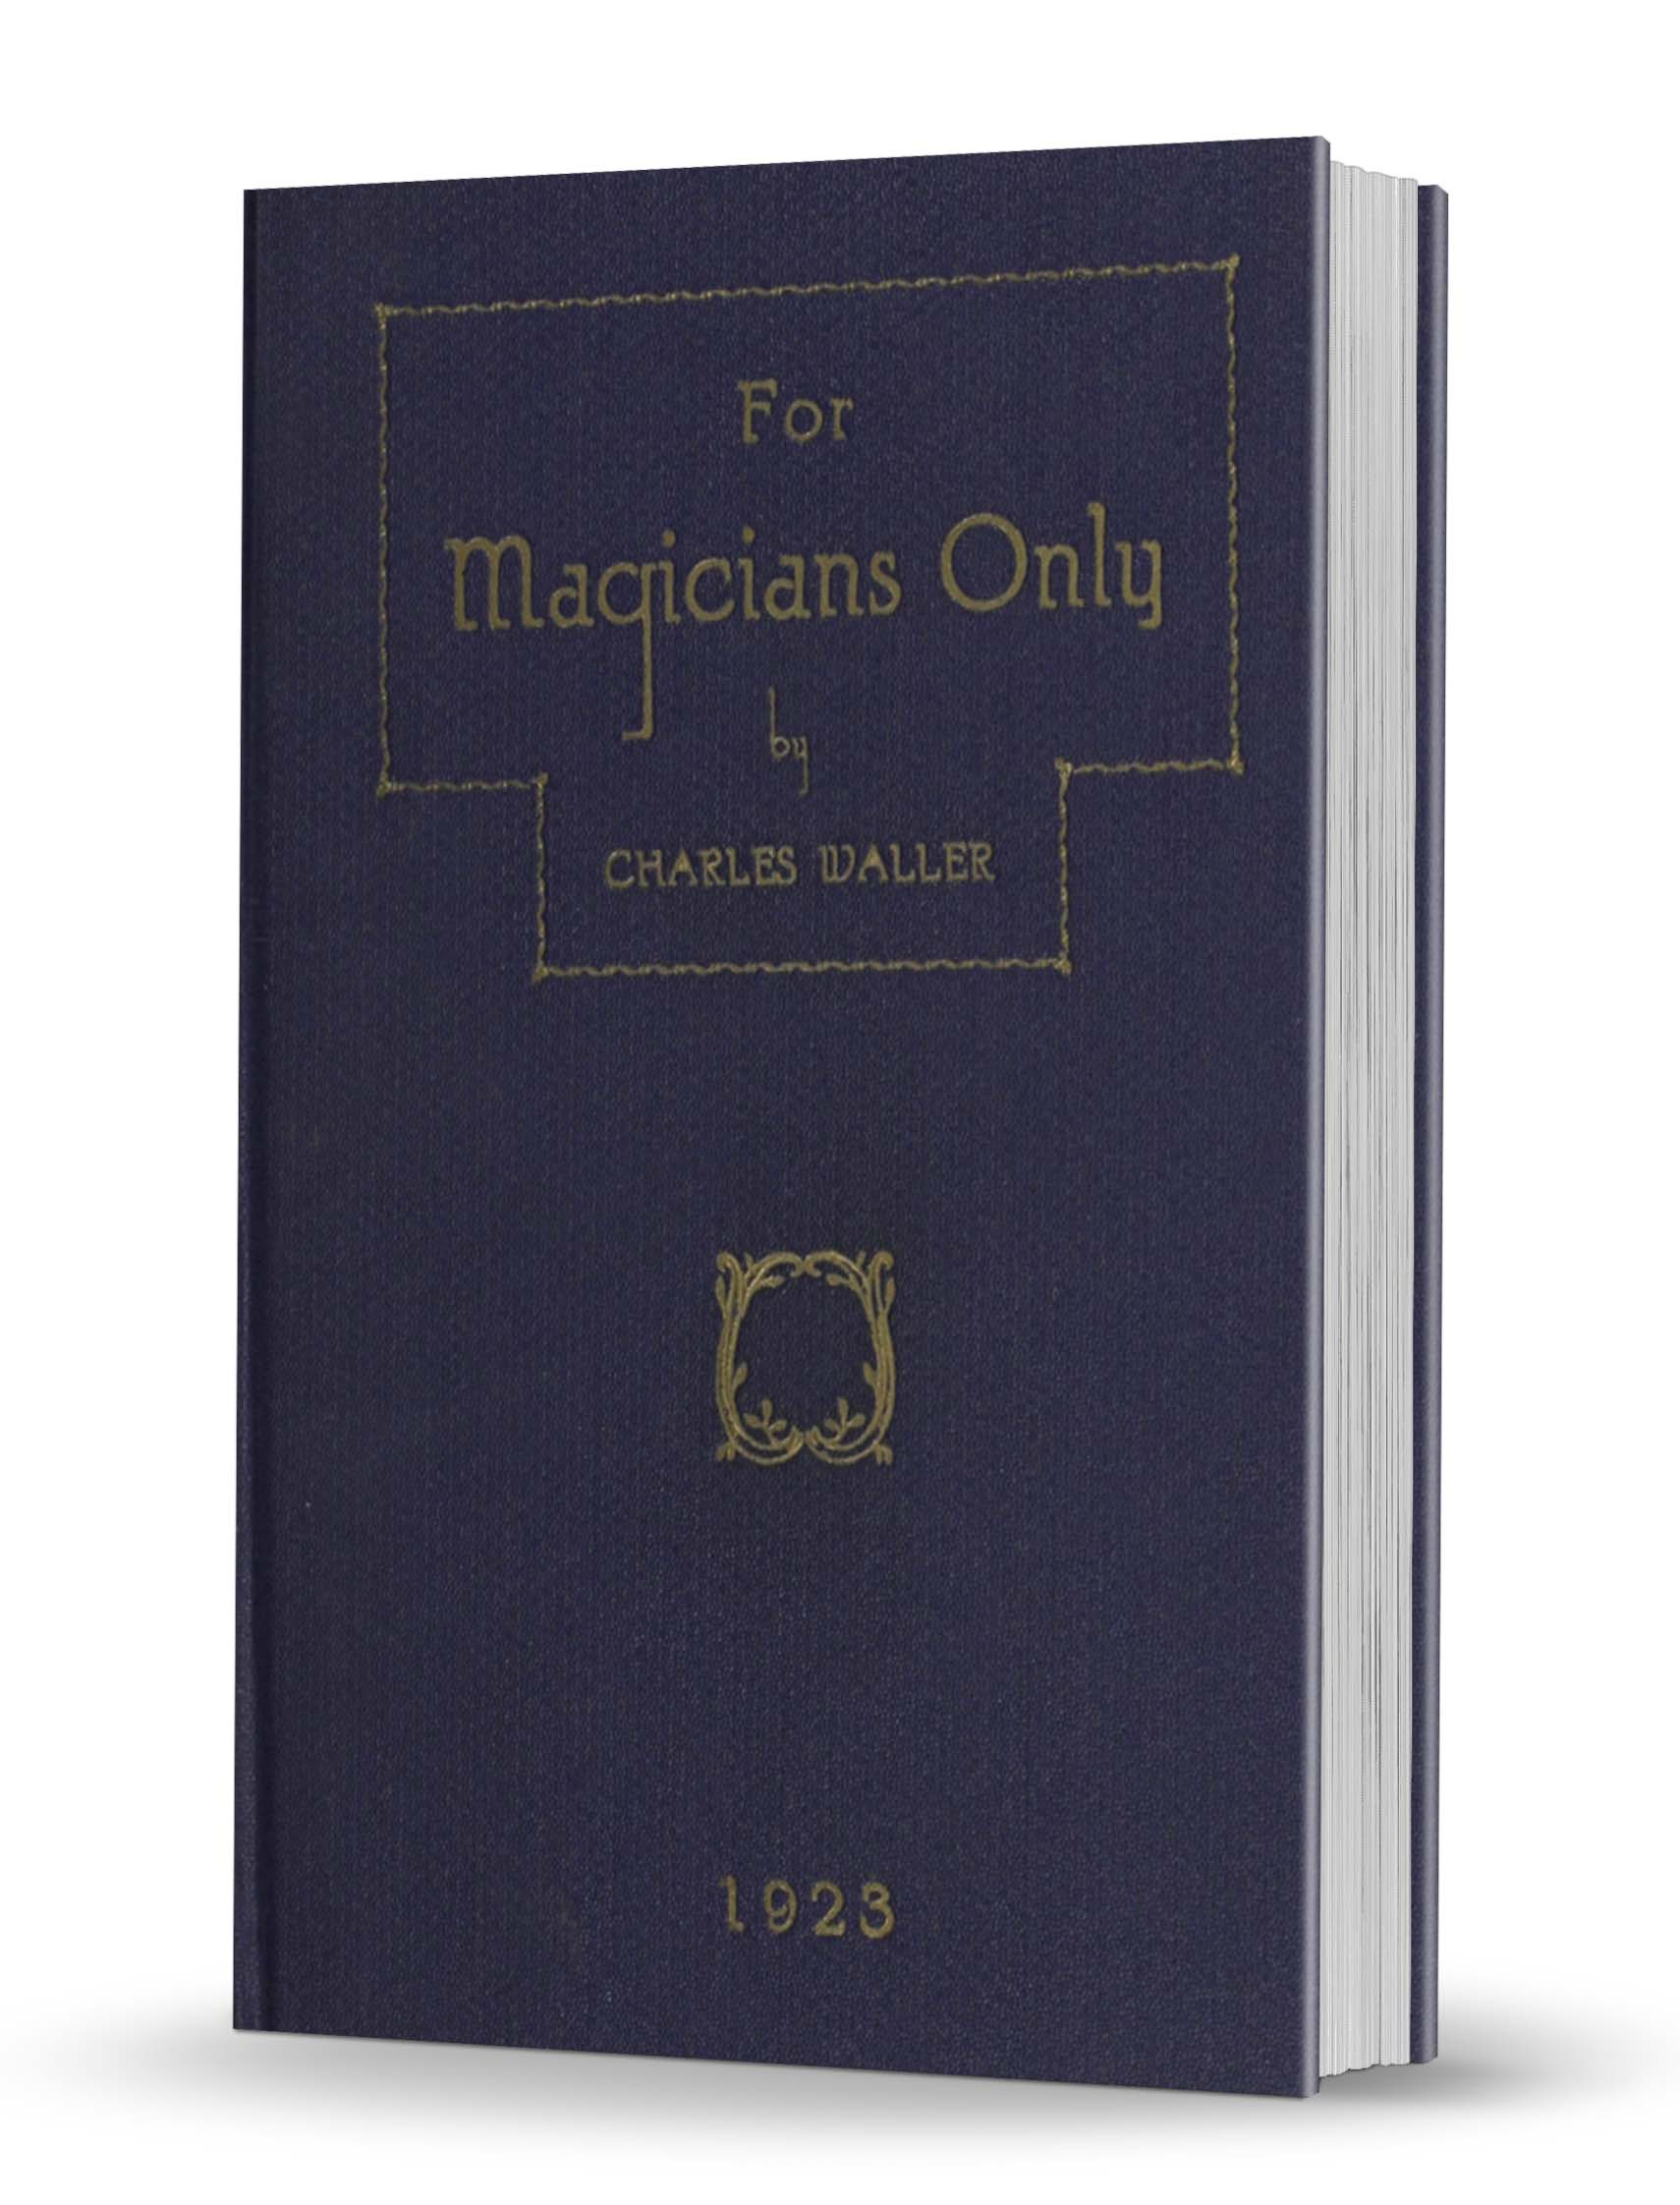 Charles Waller - For Magicians Only (1923)